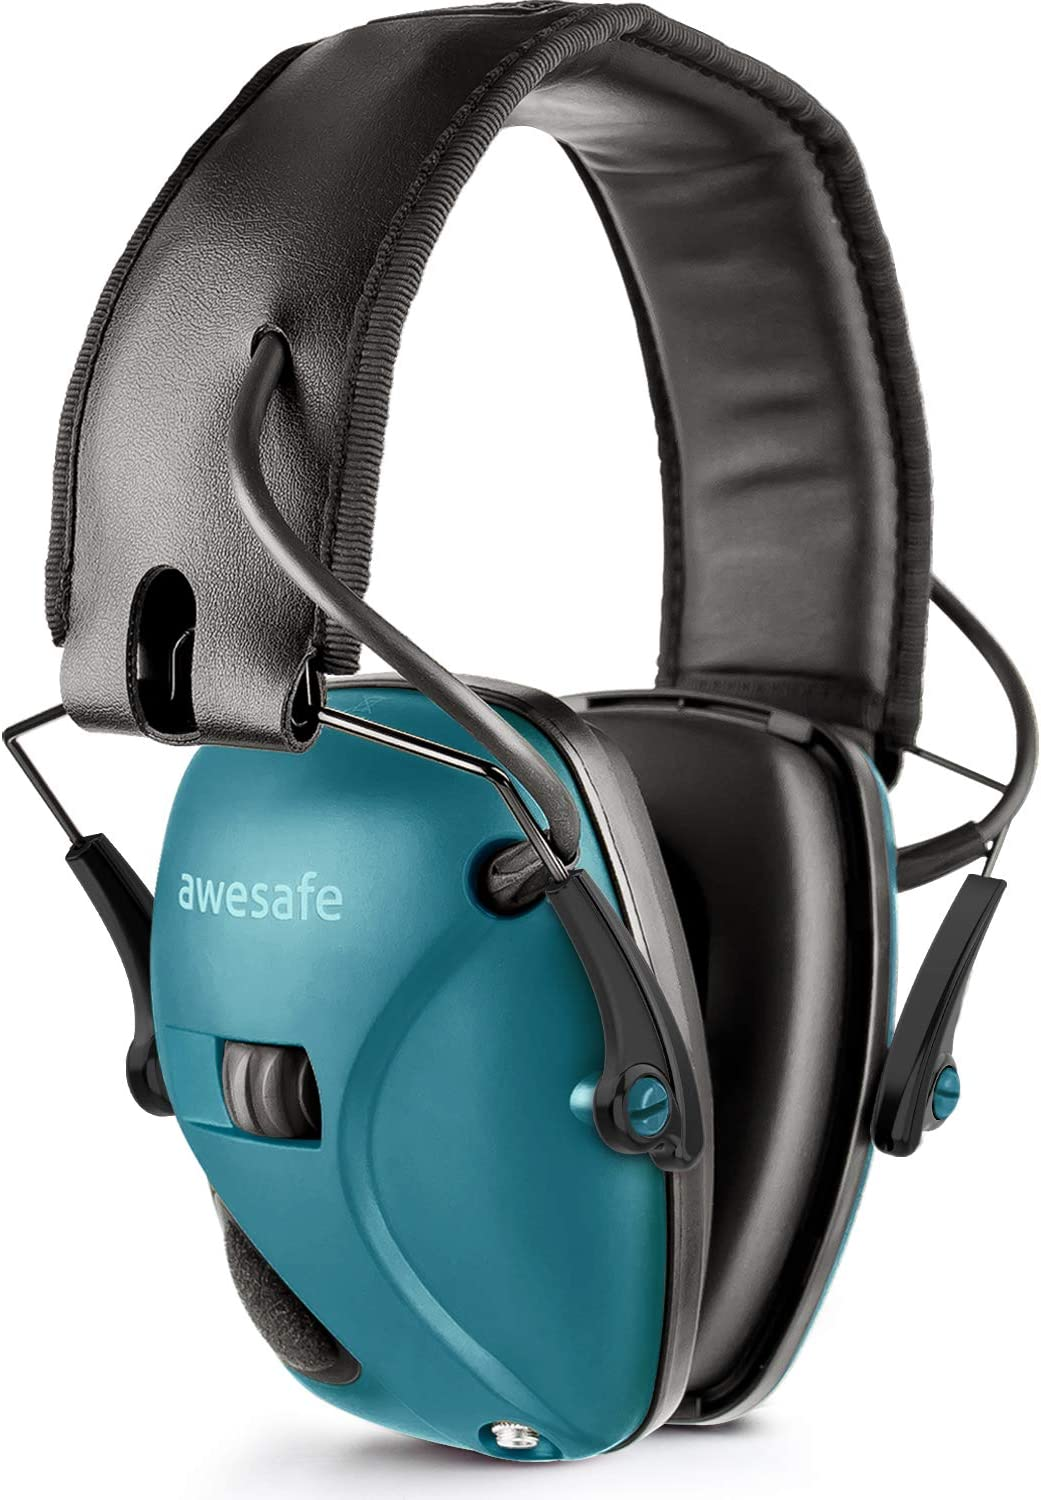 awesafe Electronic Shooting Earmuffs, Shooting Hearing Protection with Noise Reduction Sound Amplification